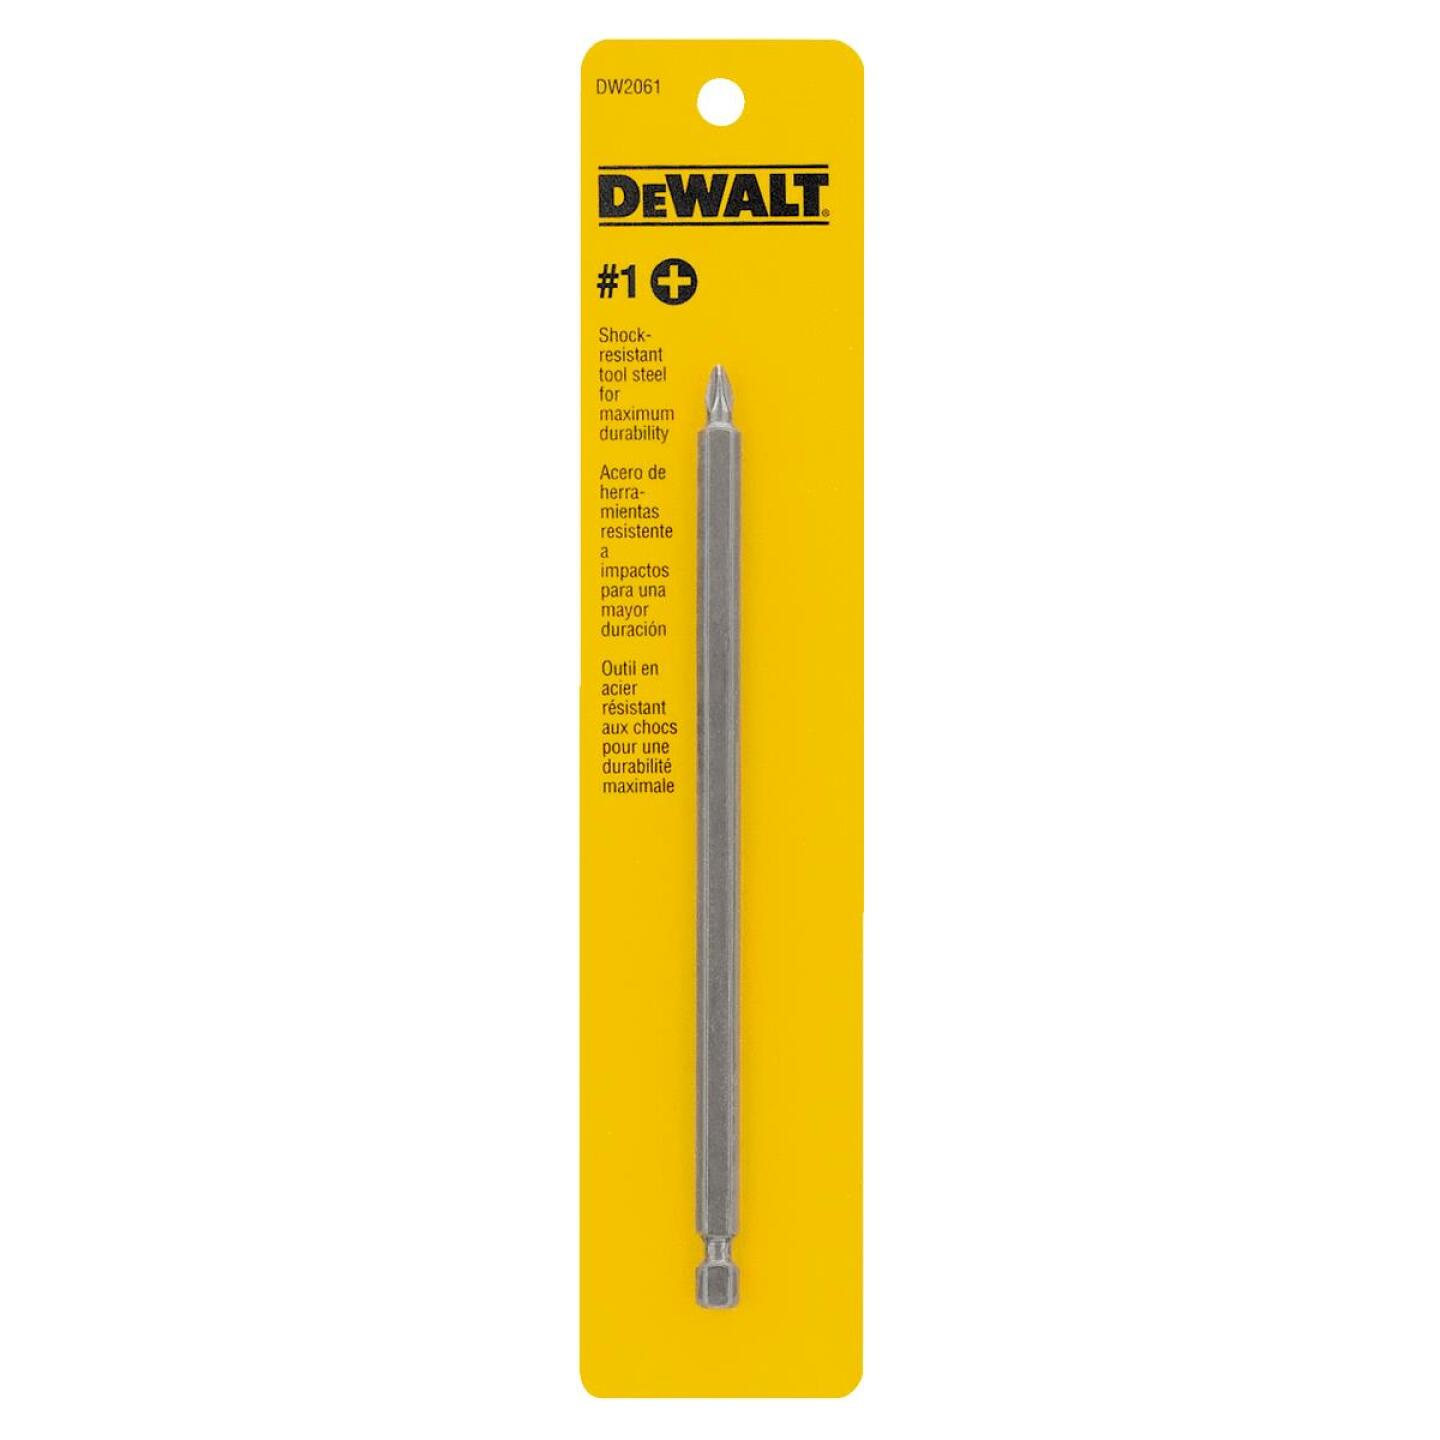 DeWalt Phillips #1 6 In. 1/4 In. Power Screwdriver Bit Image 2